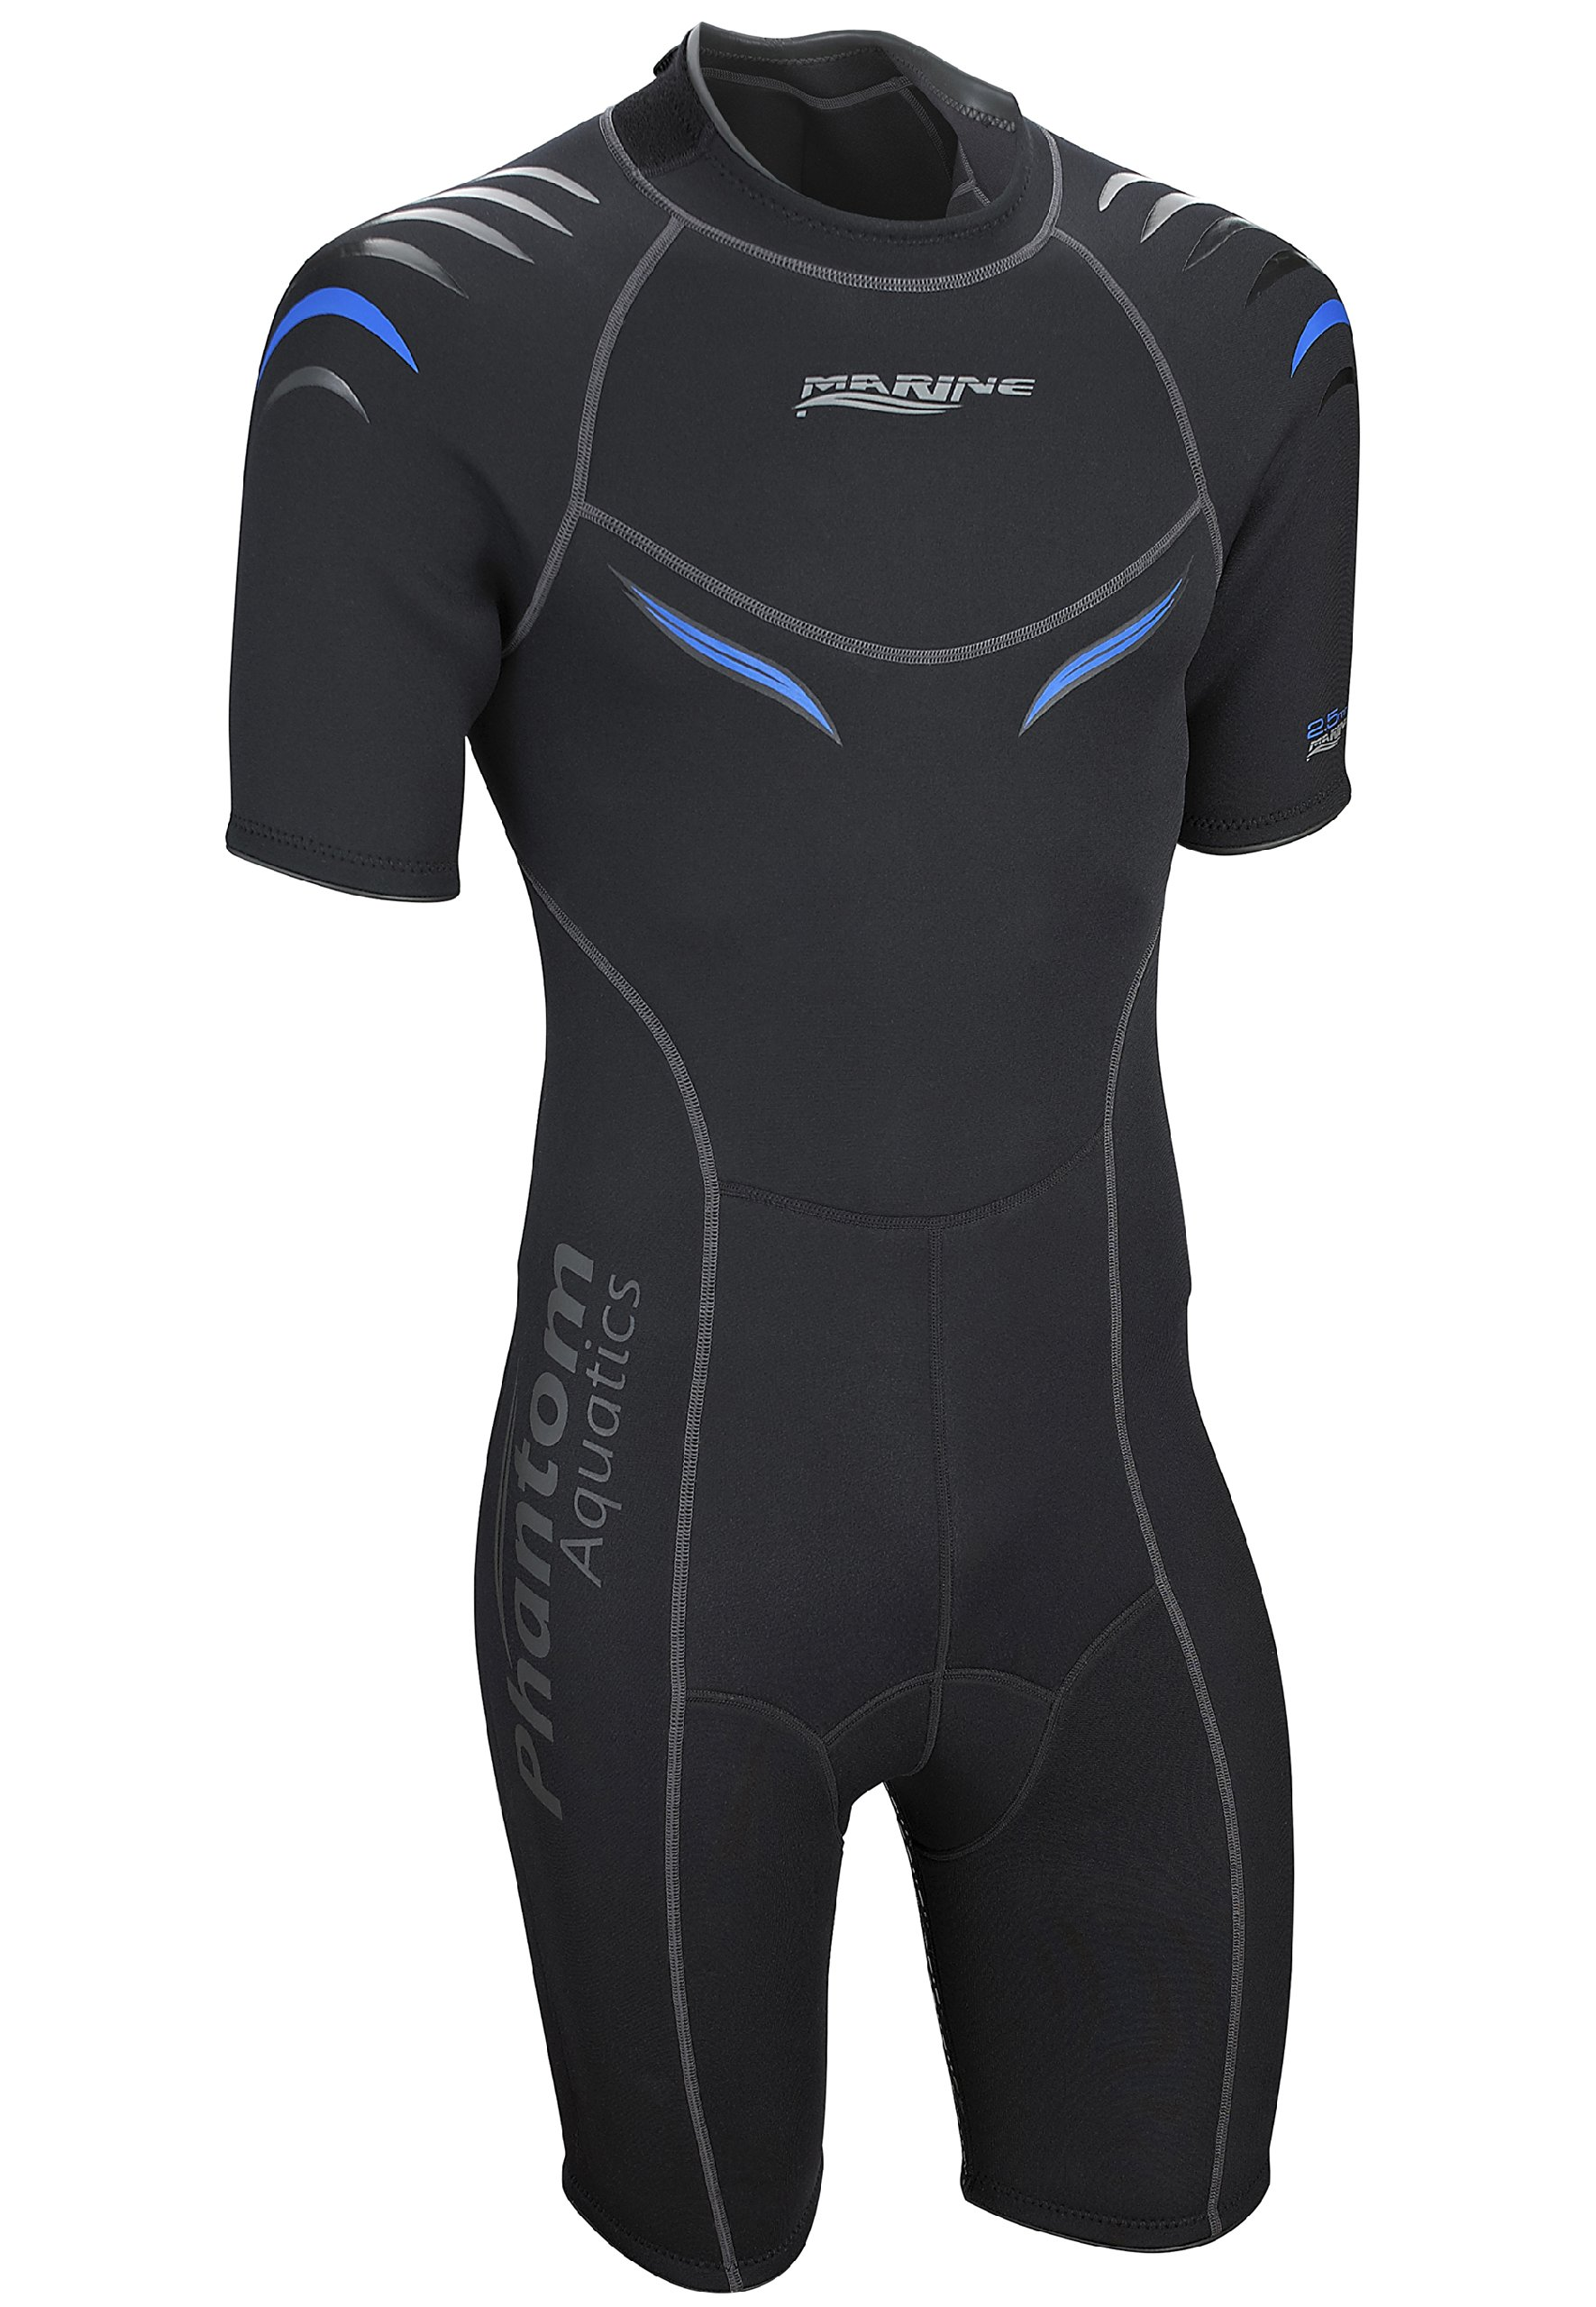 Phantom Aquatics Marine Men's Shorty Wetsuit, Black Blue - Small by Phantom Aquatics